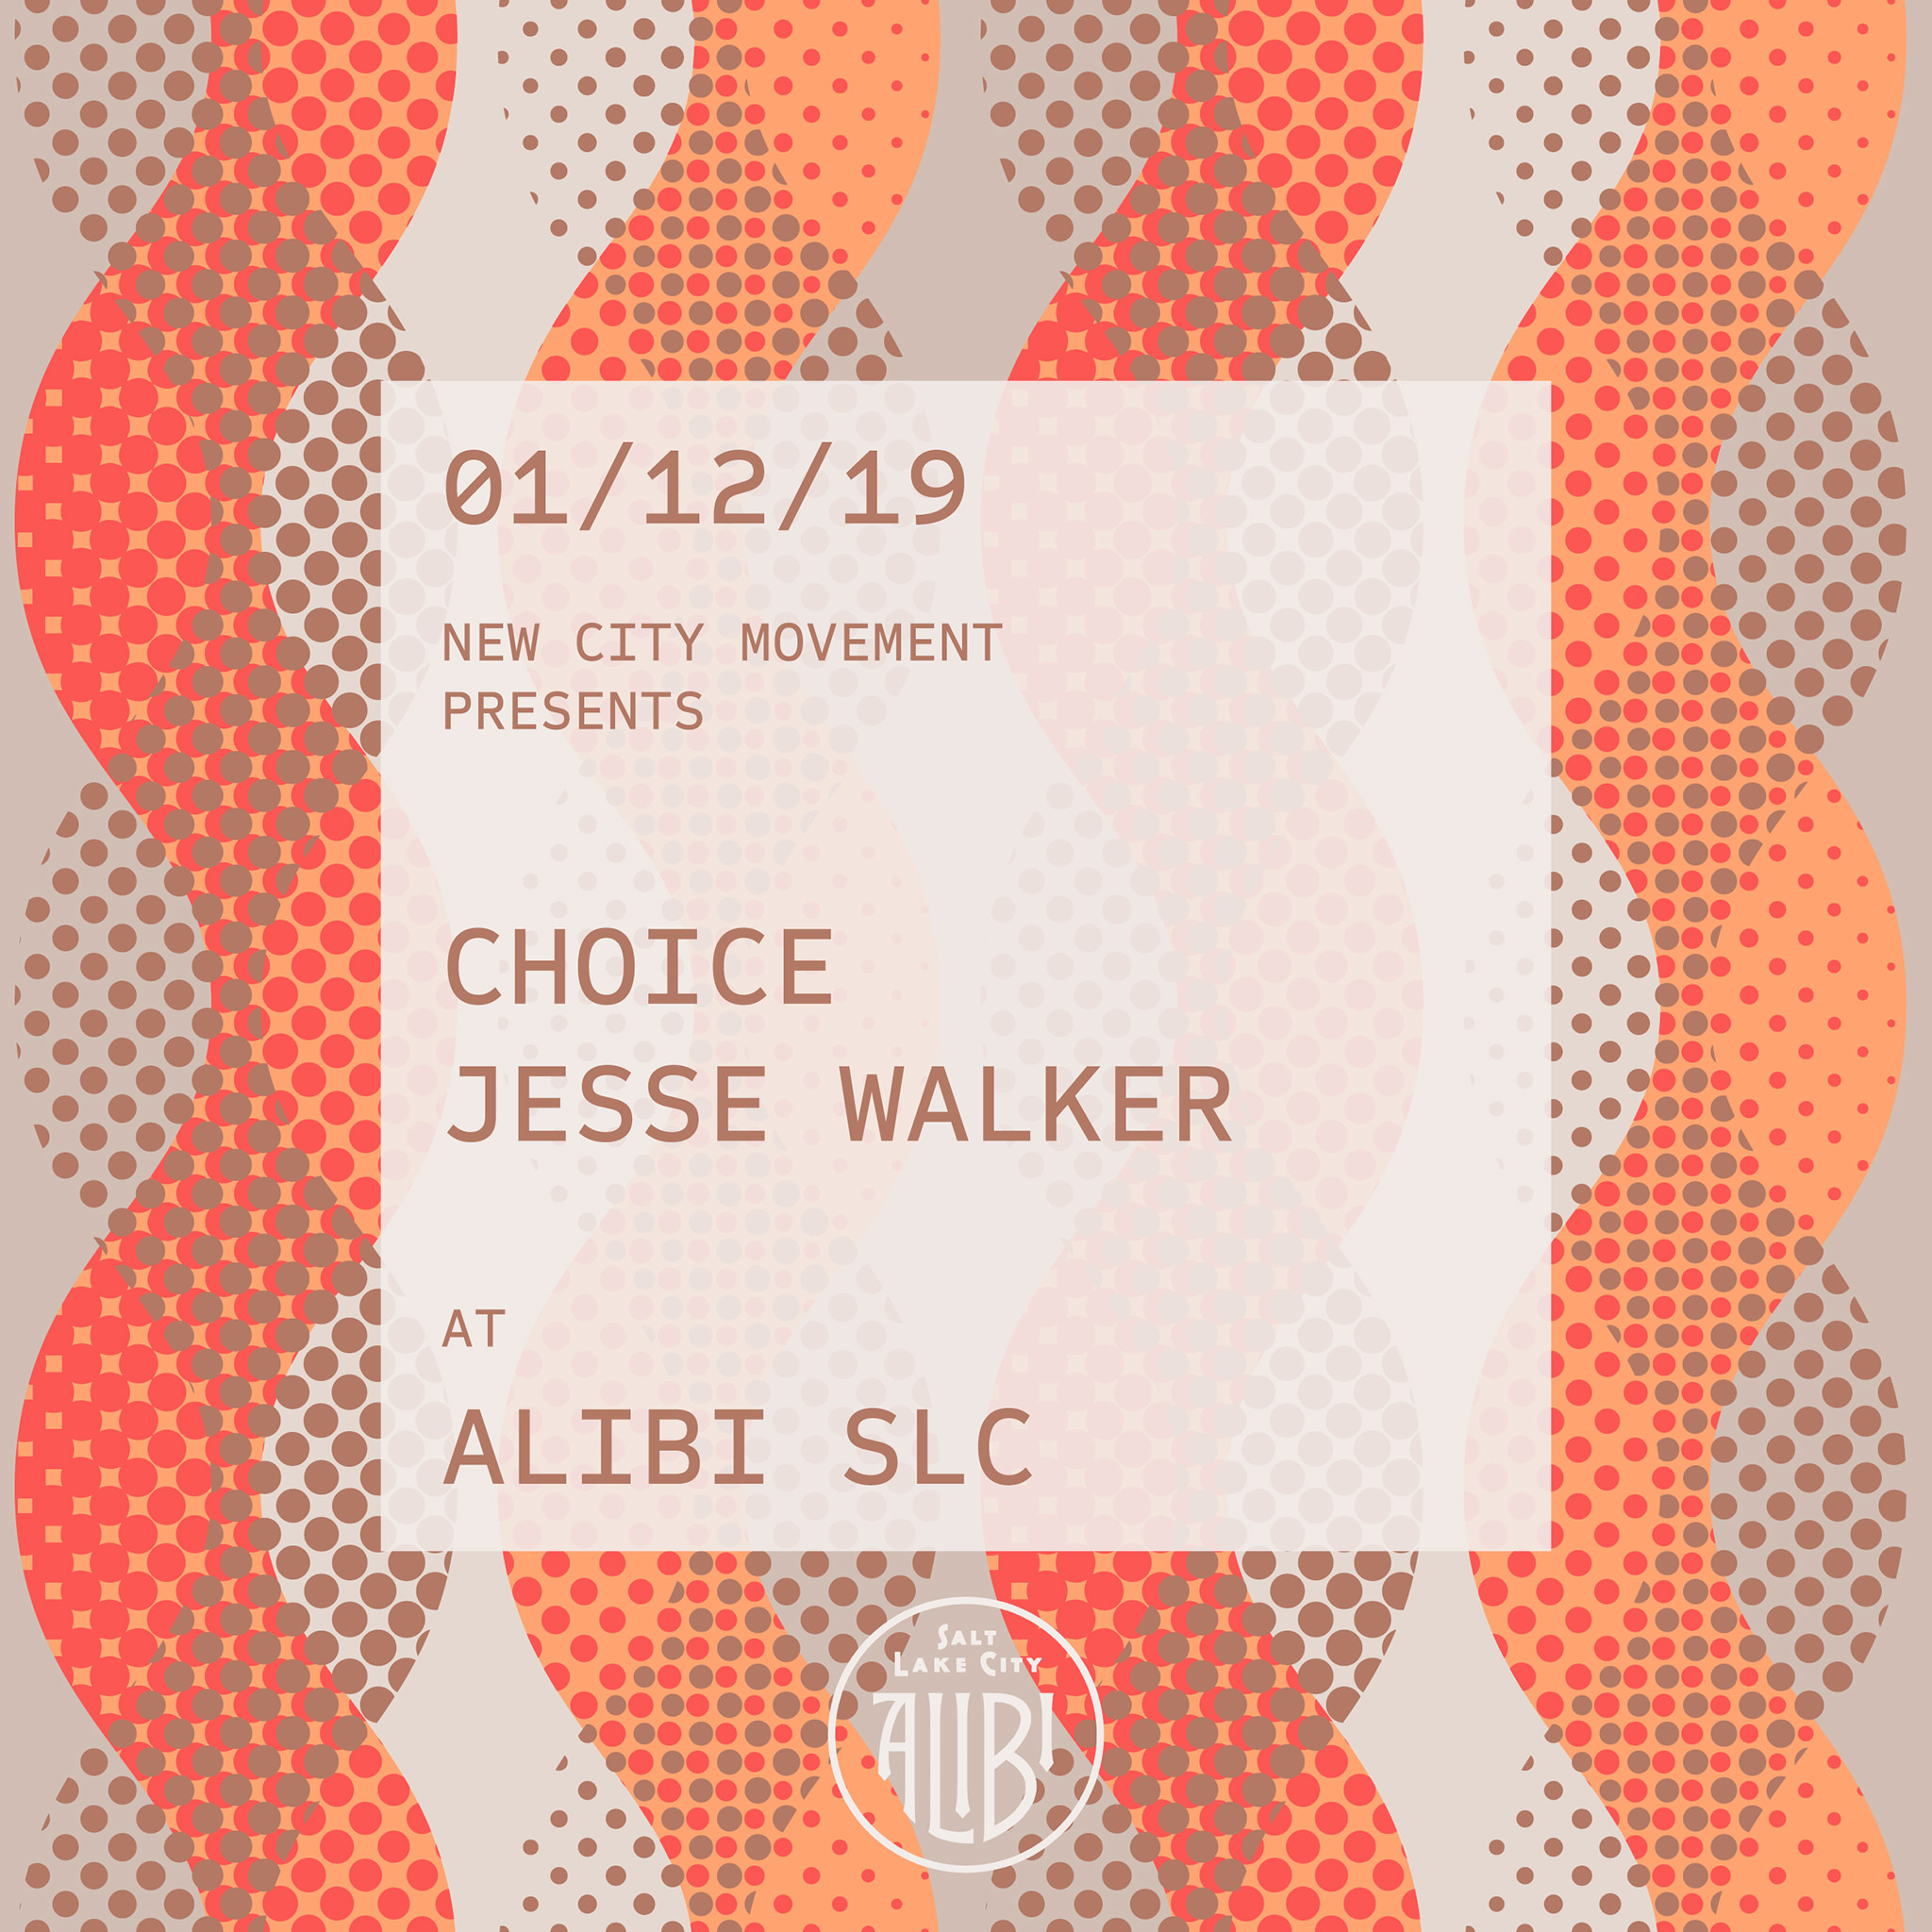 ALIBI-CHOICE-JESSE-JAN 12-2019x.jpg